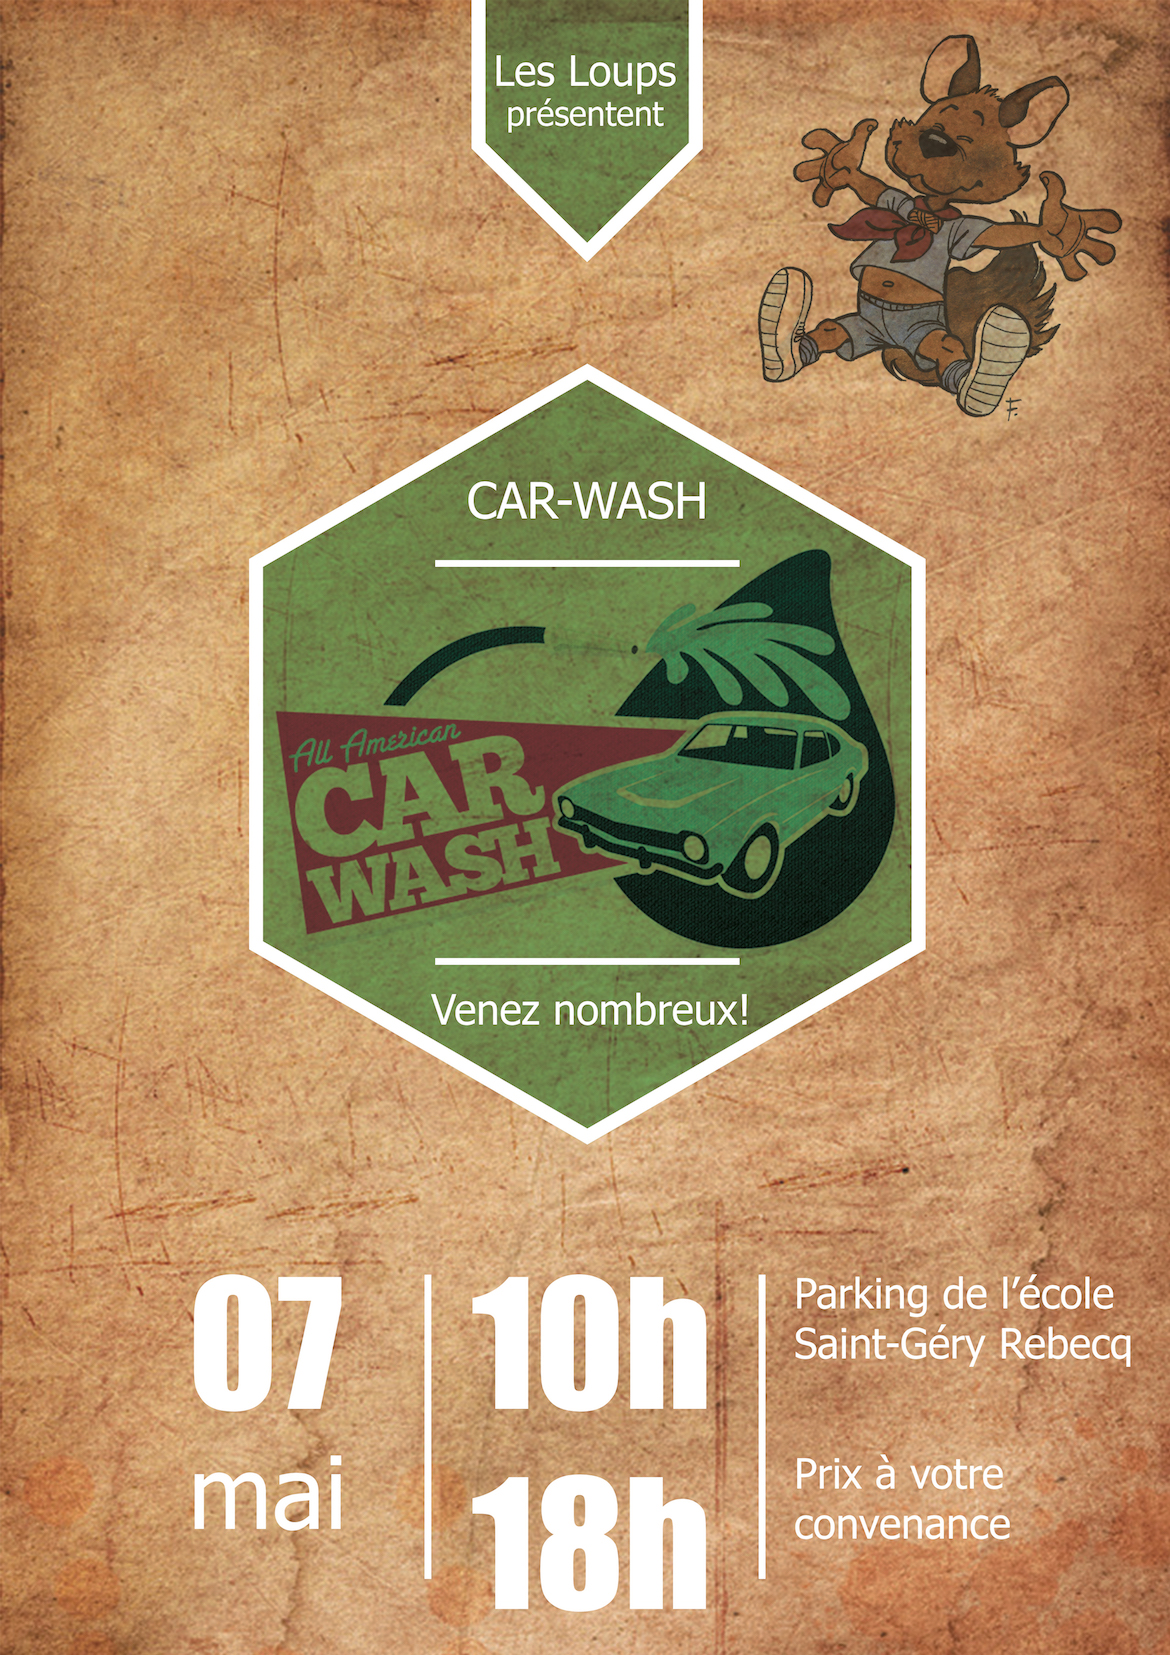 Affiche Carwash Loup